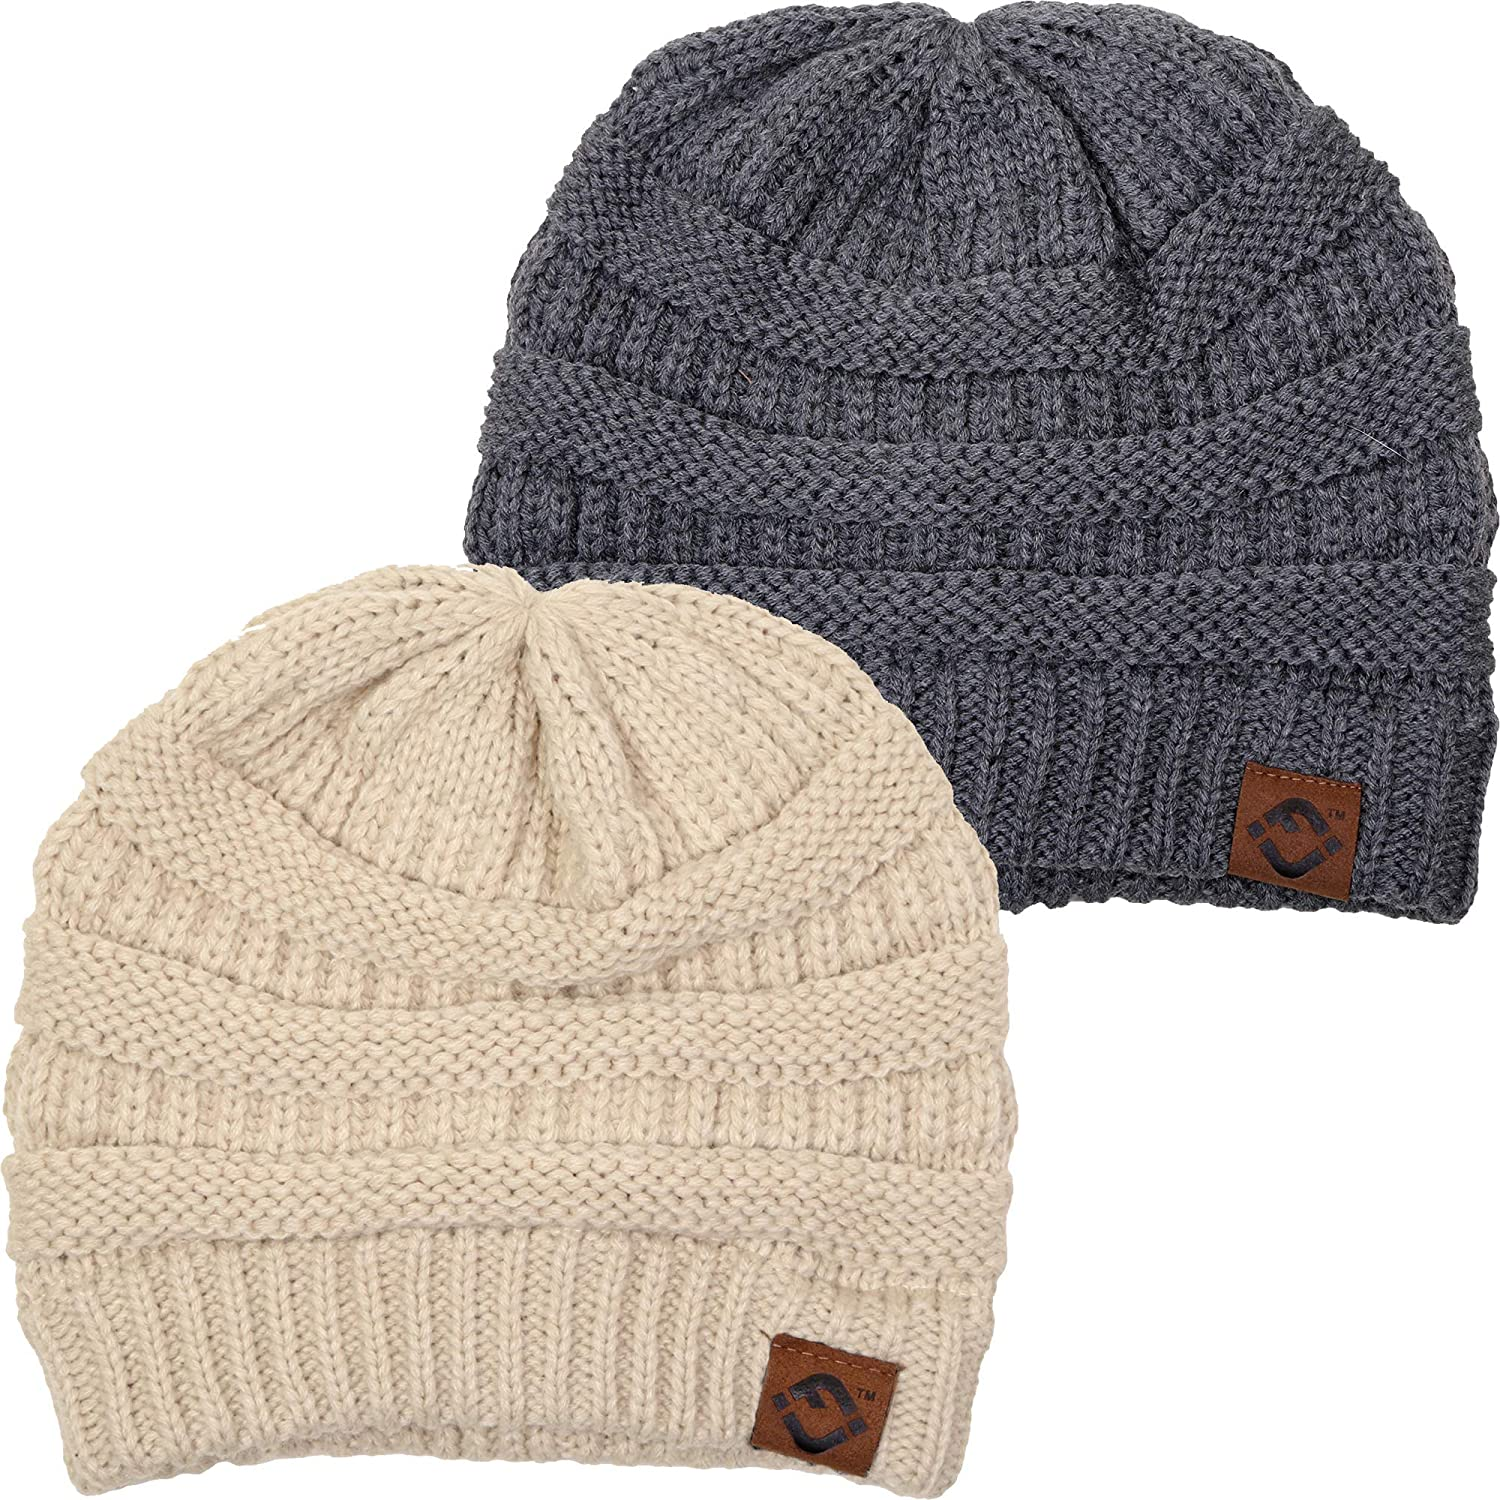 71c6a2a7204 F1-2-6070 FJ Beanie Bundle - Beige   Charcoal (2 Pack) at Amazon Women s  Clothing store